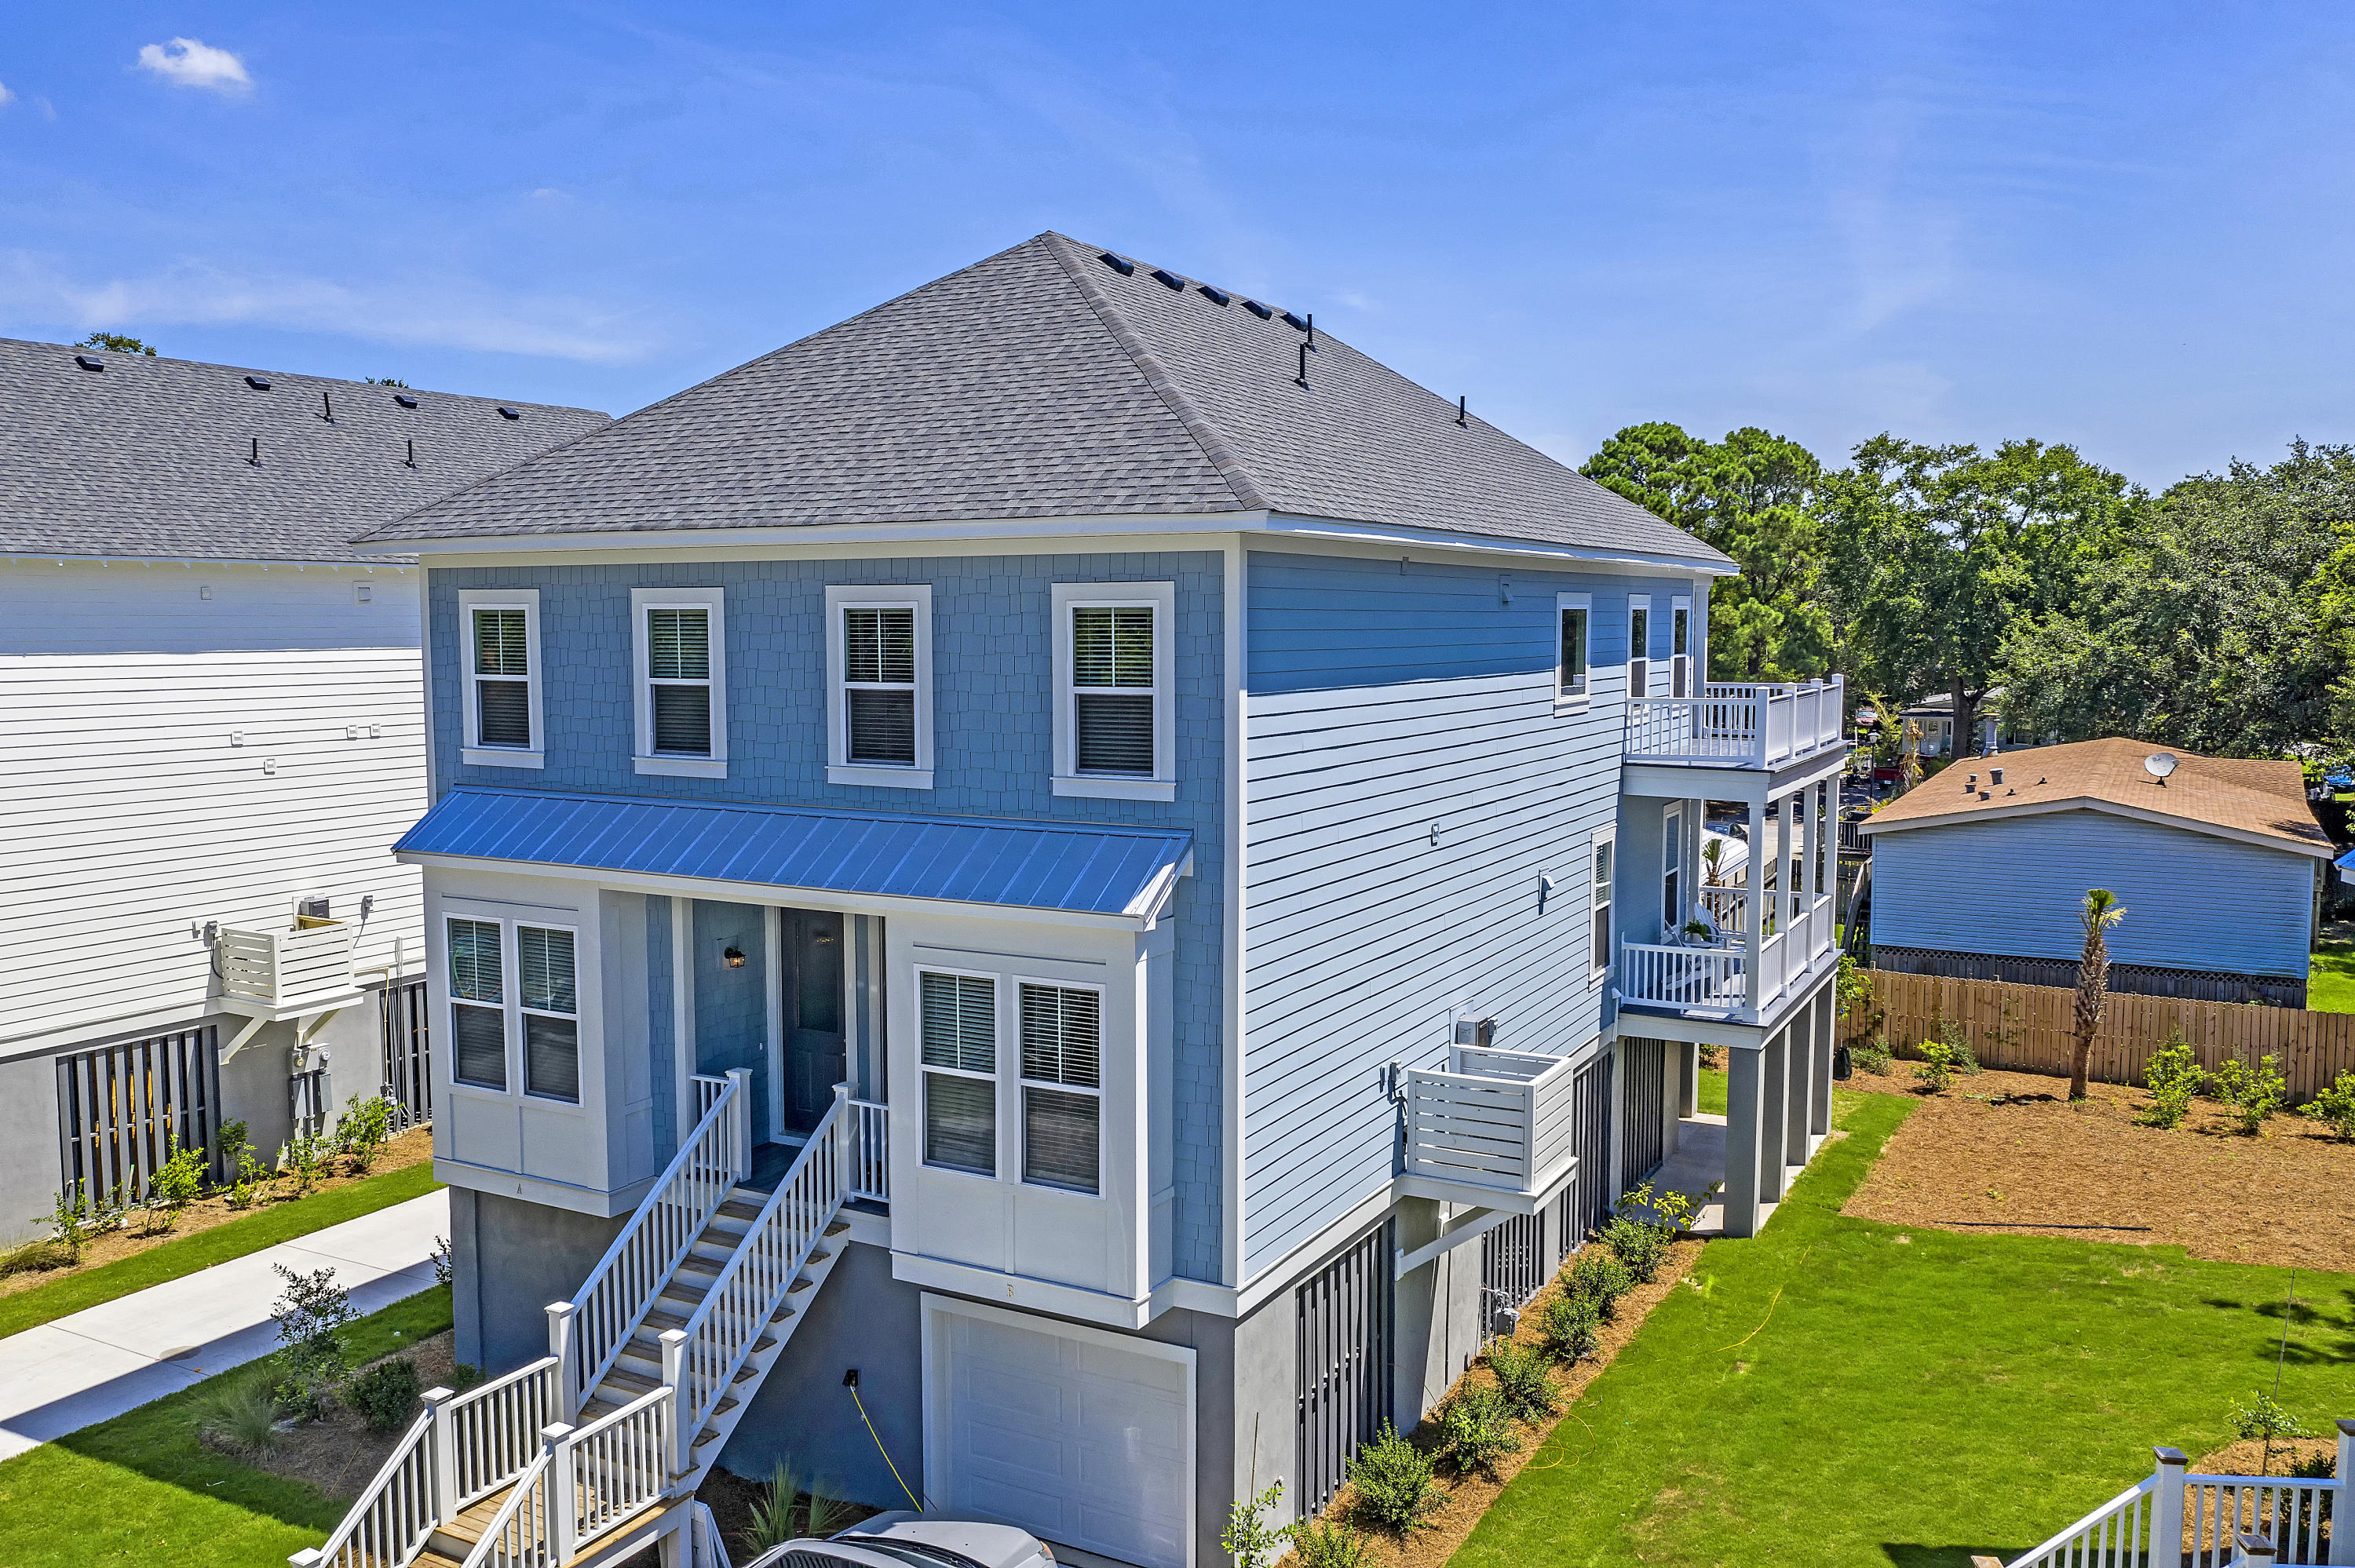 Sable On The Marsh Homes For Sale - 124 Howard Mary, Charleston, SC - 1